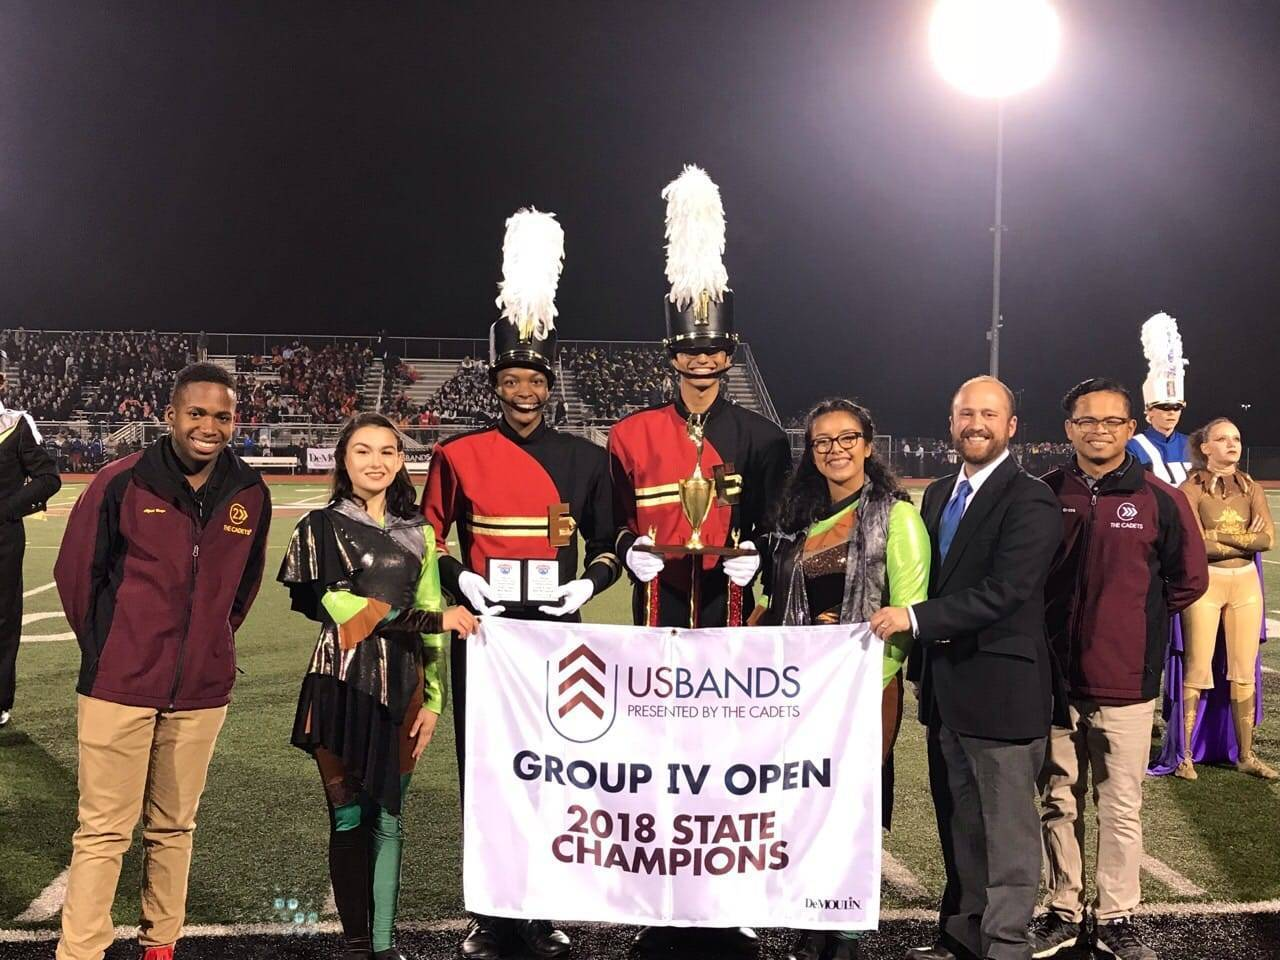 Edison High School Marching Band-1st Place in the USBands State Competitions-Group IV.jpg